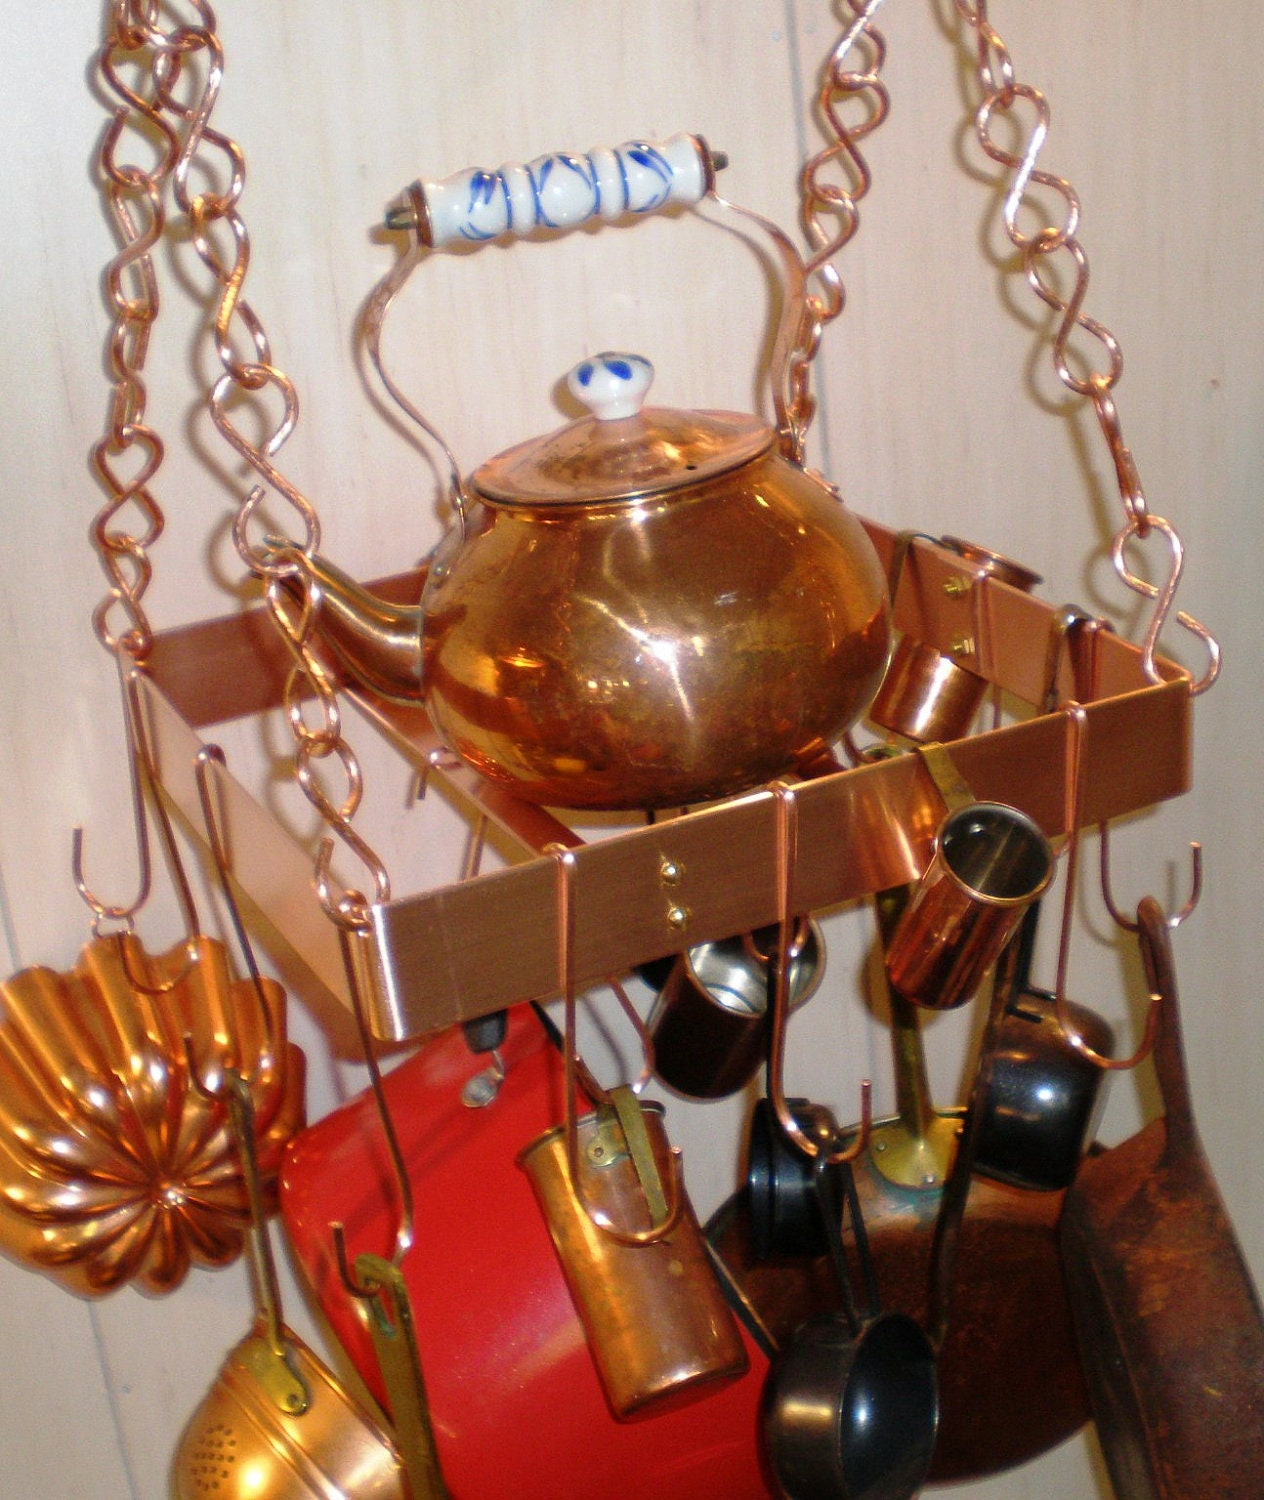 12 Inch SQUARE Hanging Solid Copper Pot Rack with 16 hooks and